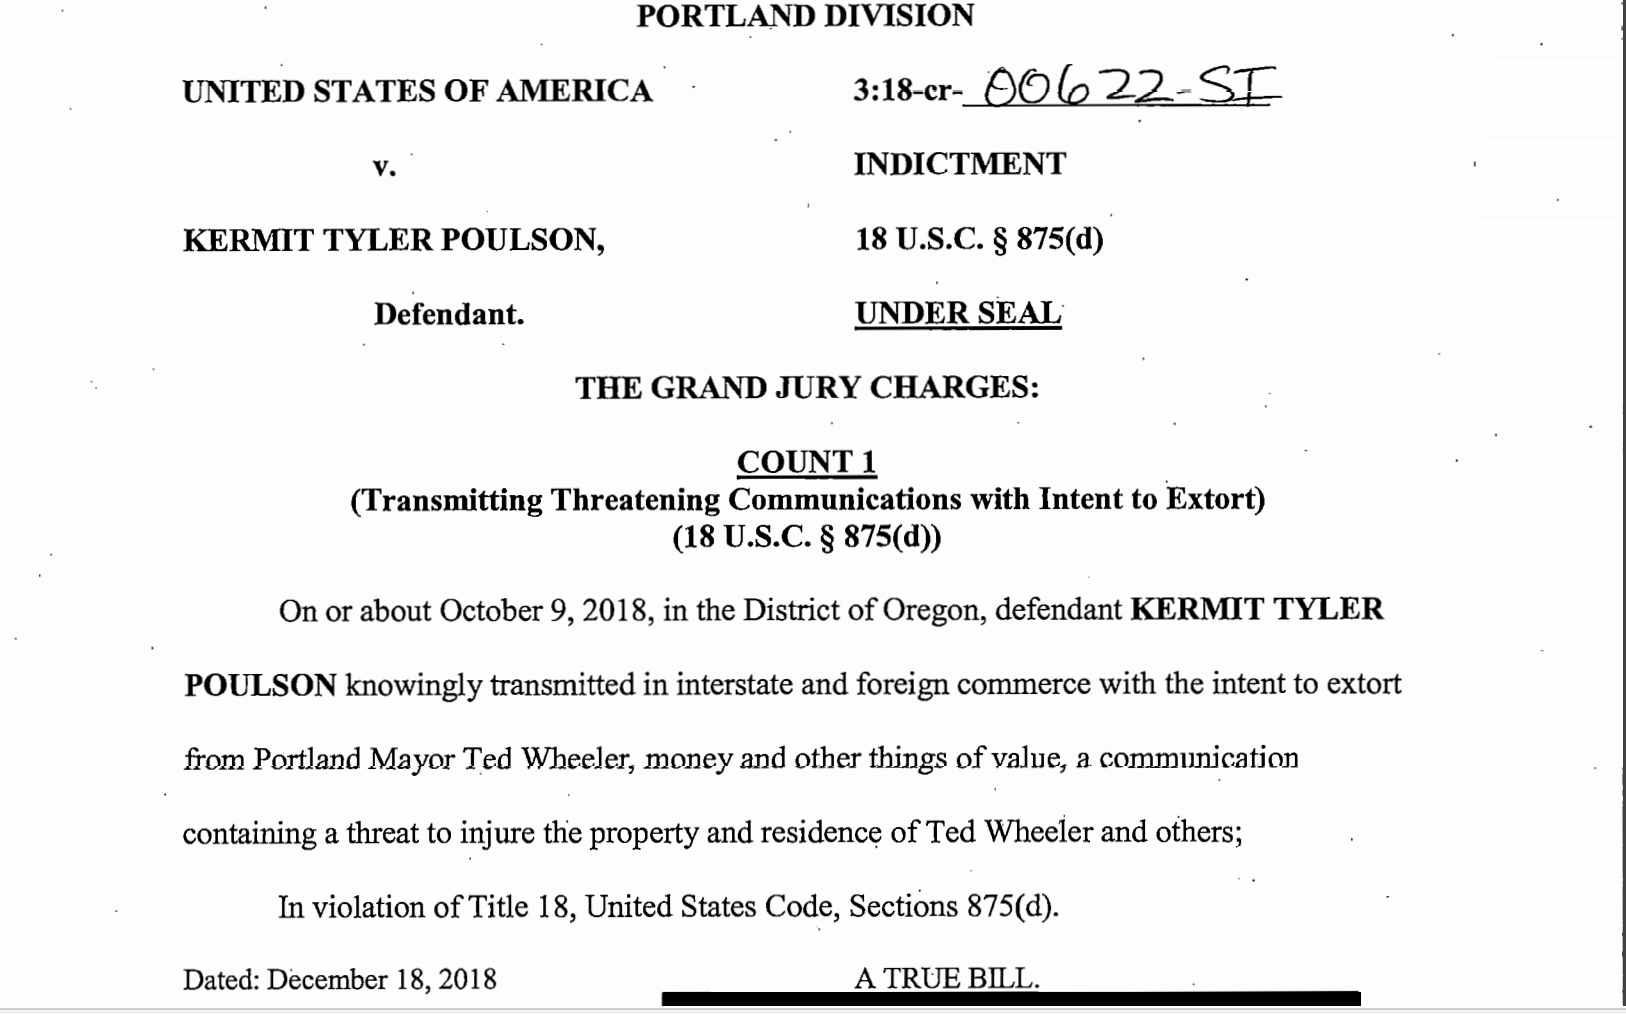 Man accused of threatening to blackmail Mayor Ted Wheeler